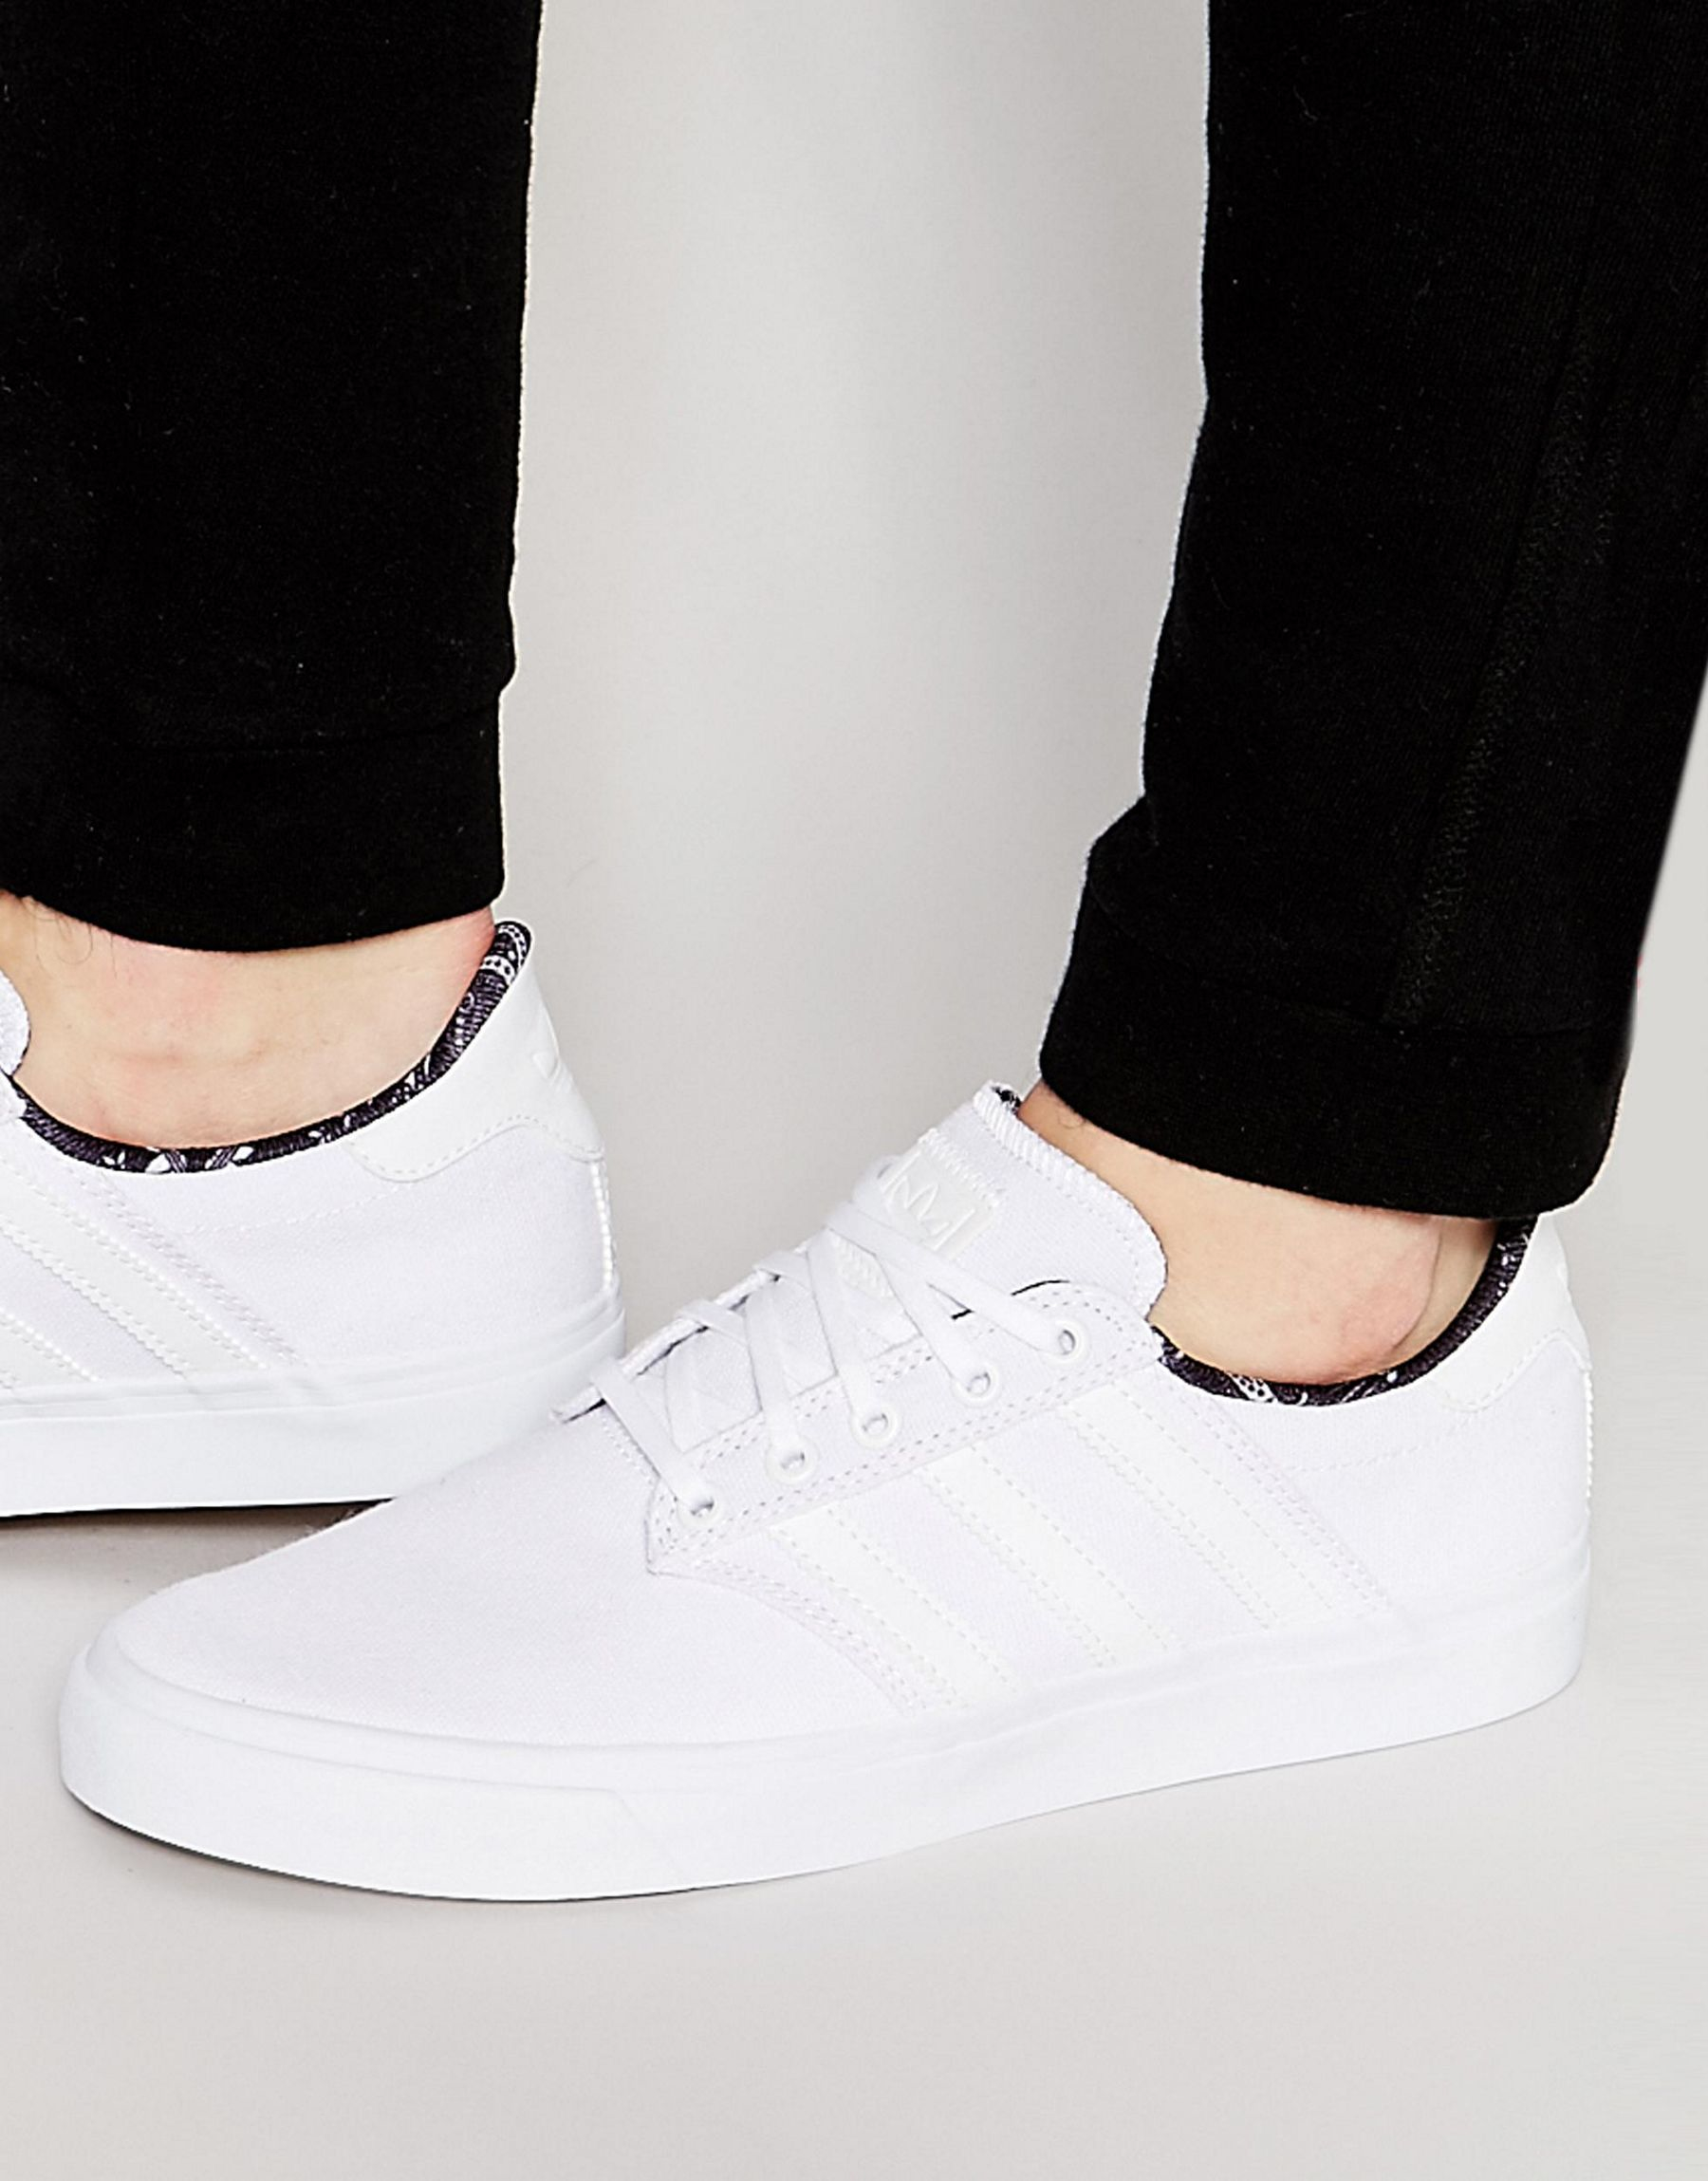 a47177851f6 Lyst - adidas Originals Seeley Ii Sneakers F37719 in White for Men